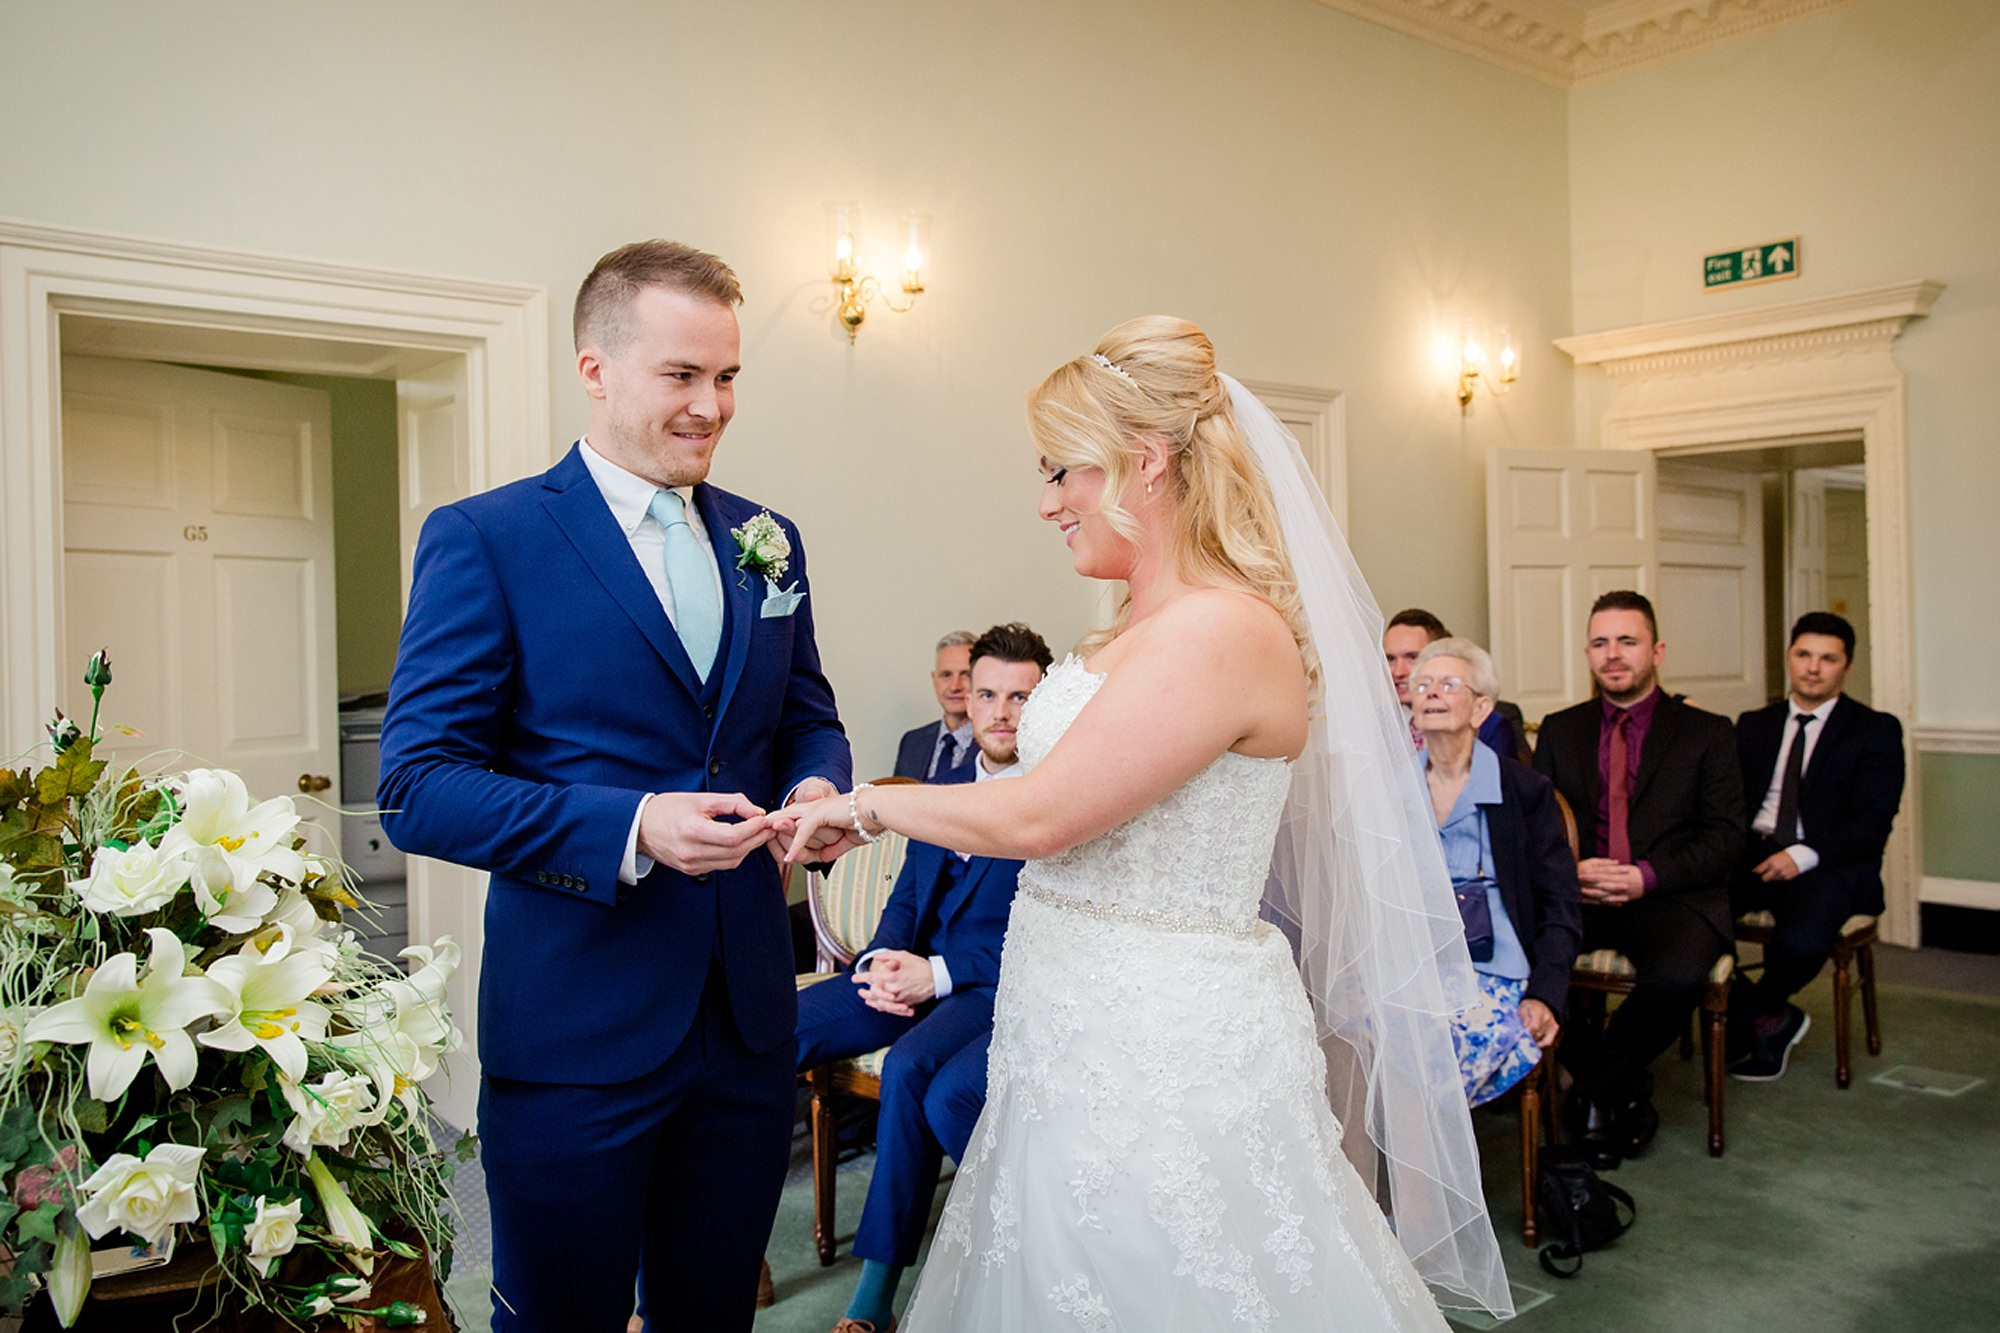 Old Greens Barn Newdigate wedding photography exchanging of rings